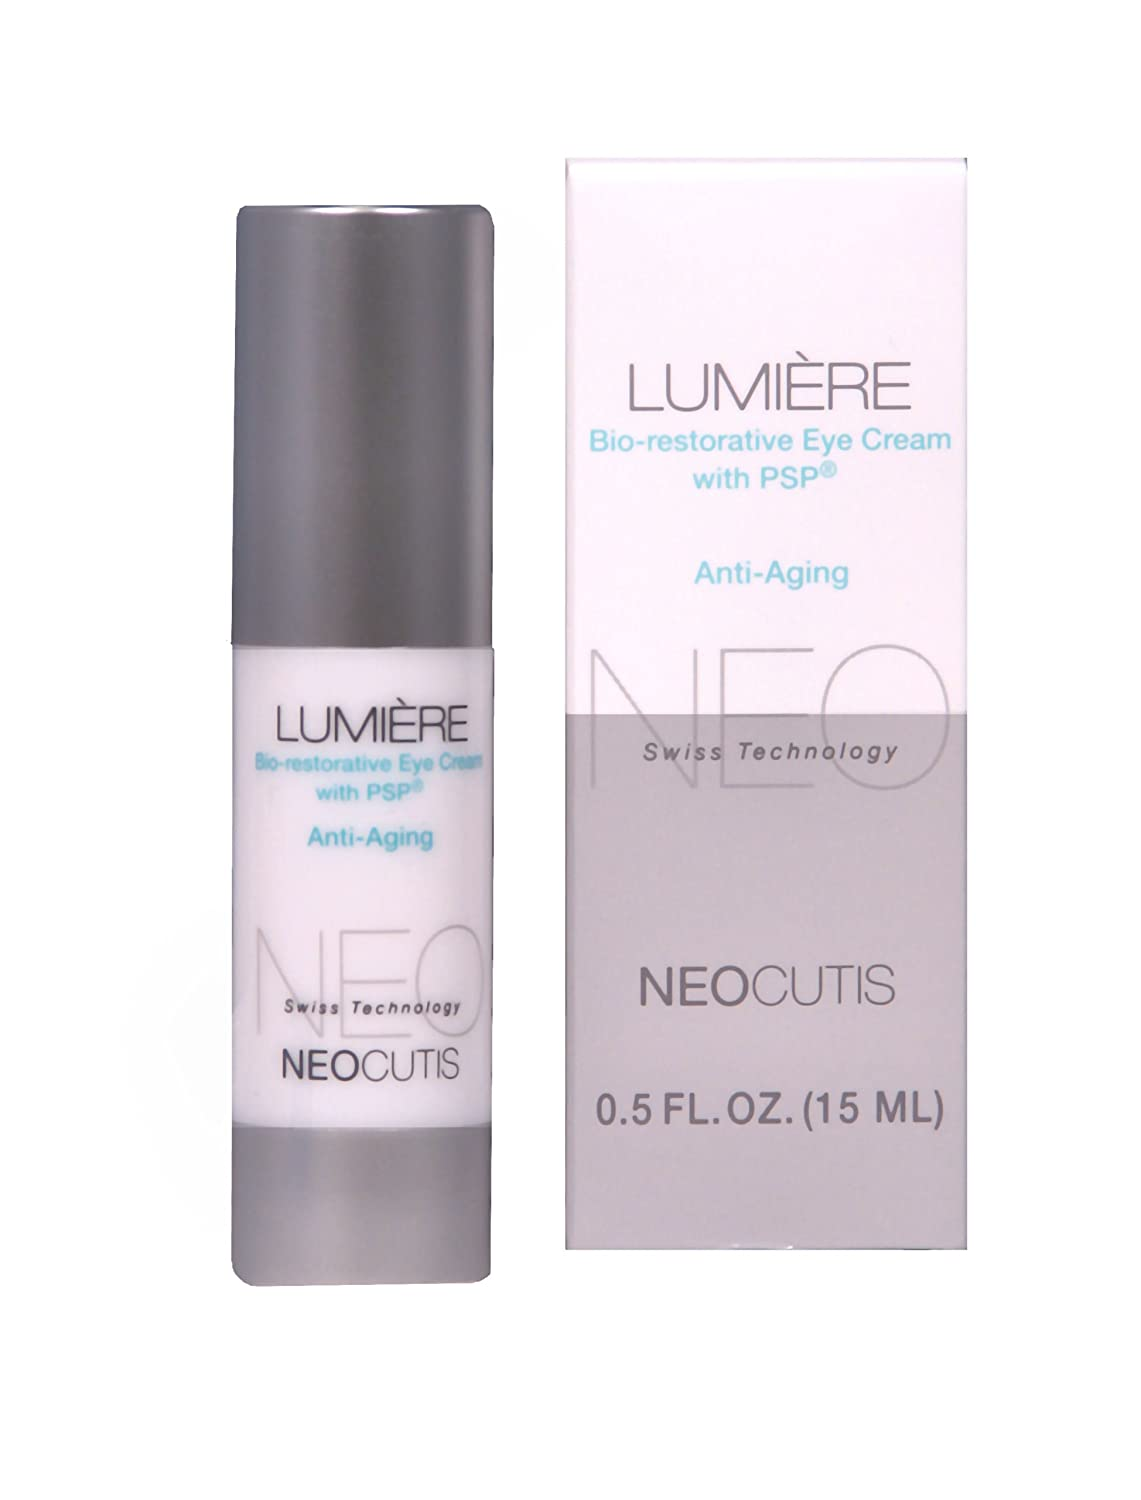 Lumiere eye cream before and after